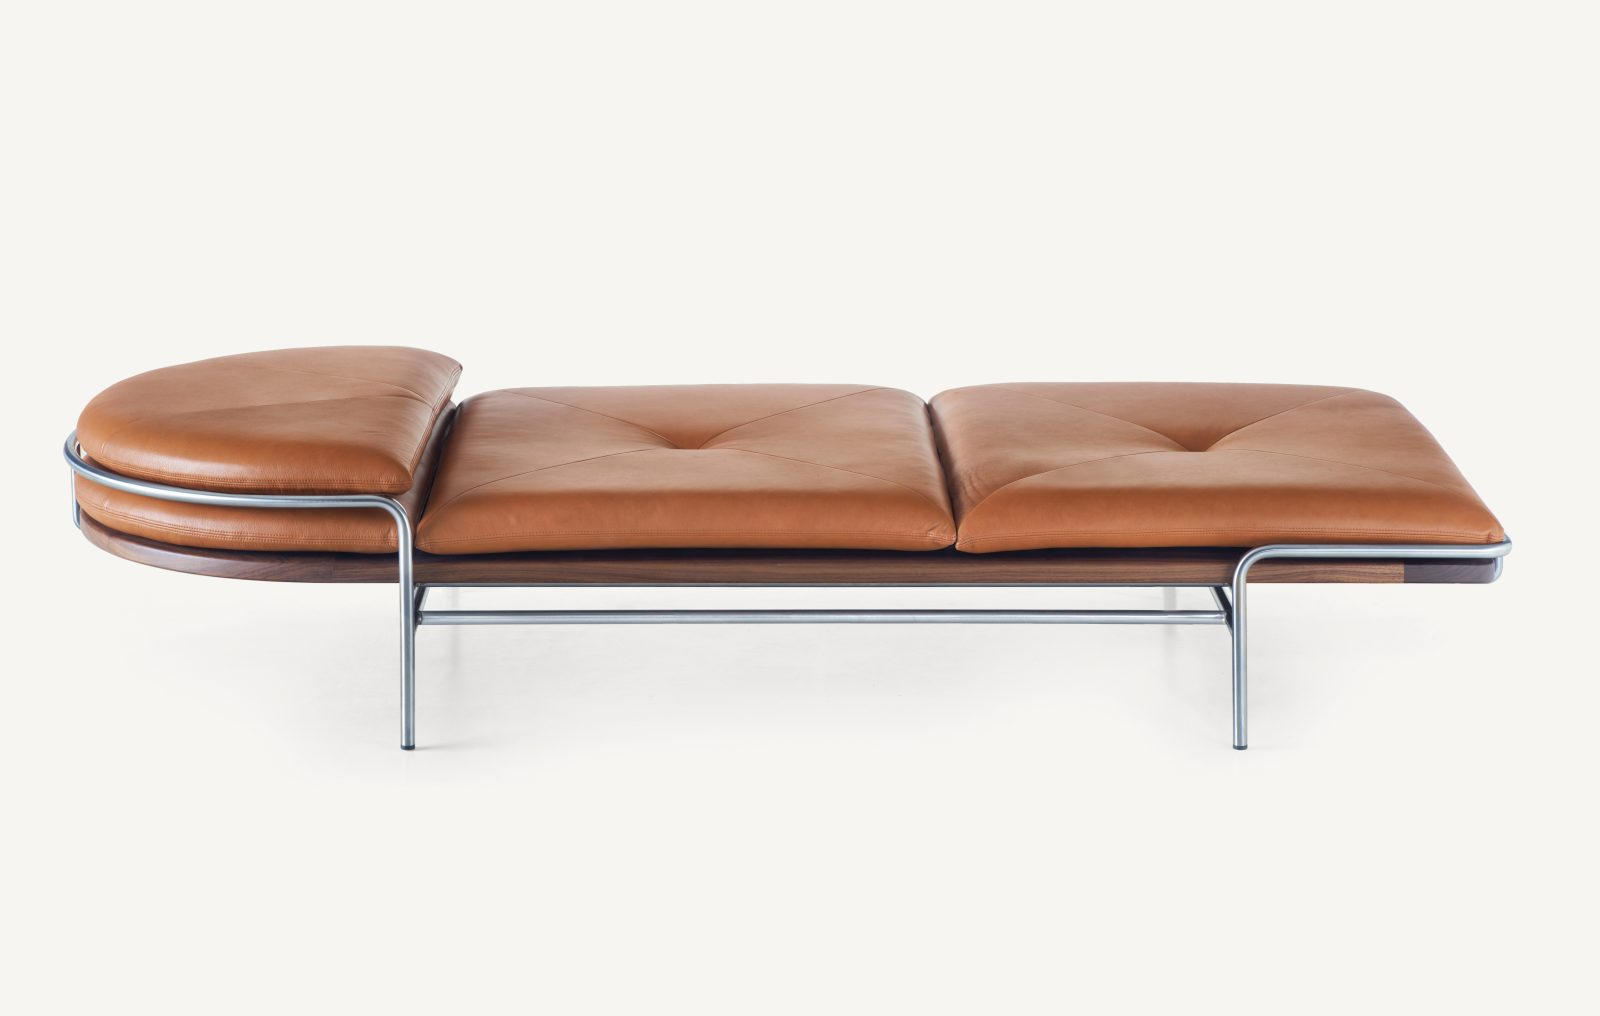 BassamFellows CB-457 Geometric Daybed in Walnut and Satin Nickel, profile, credit MARCO FAVALI